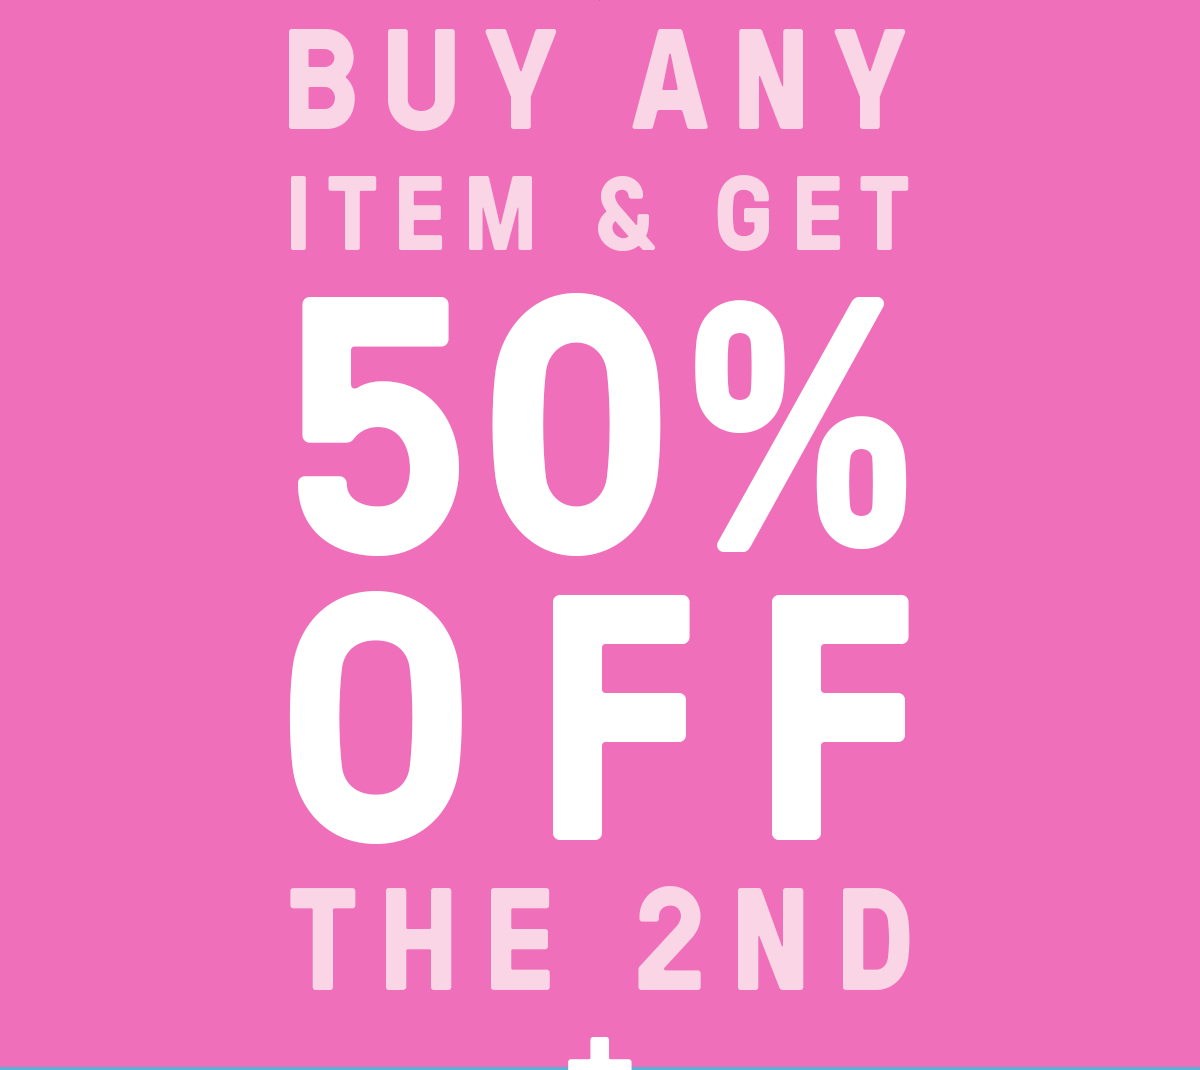 It's so BUNNY good! Get 50% off the second!! ? Ends Monday